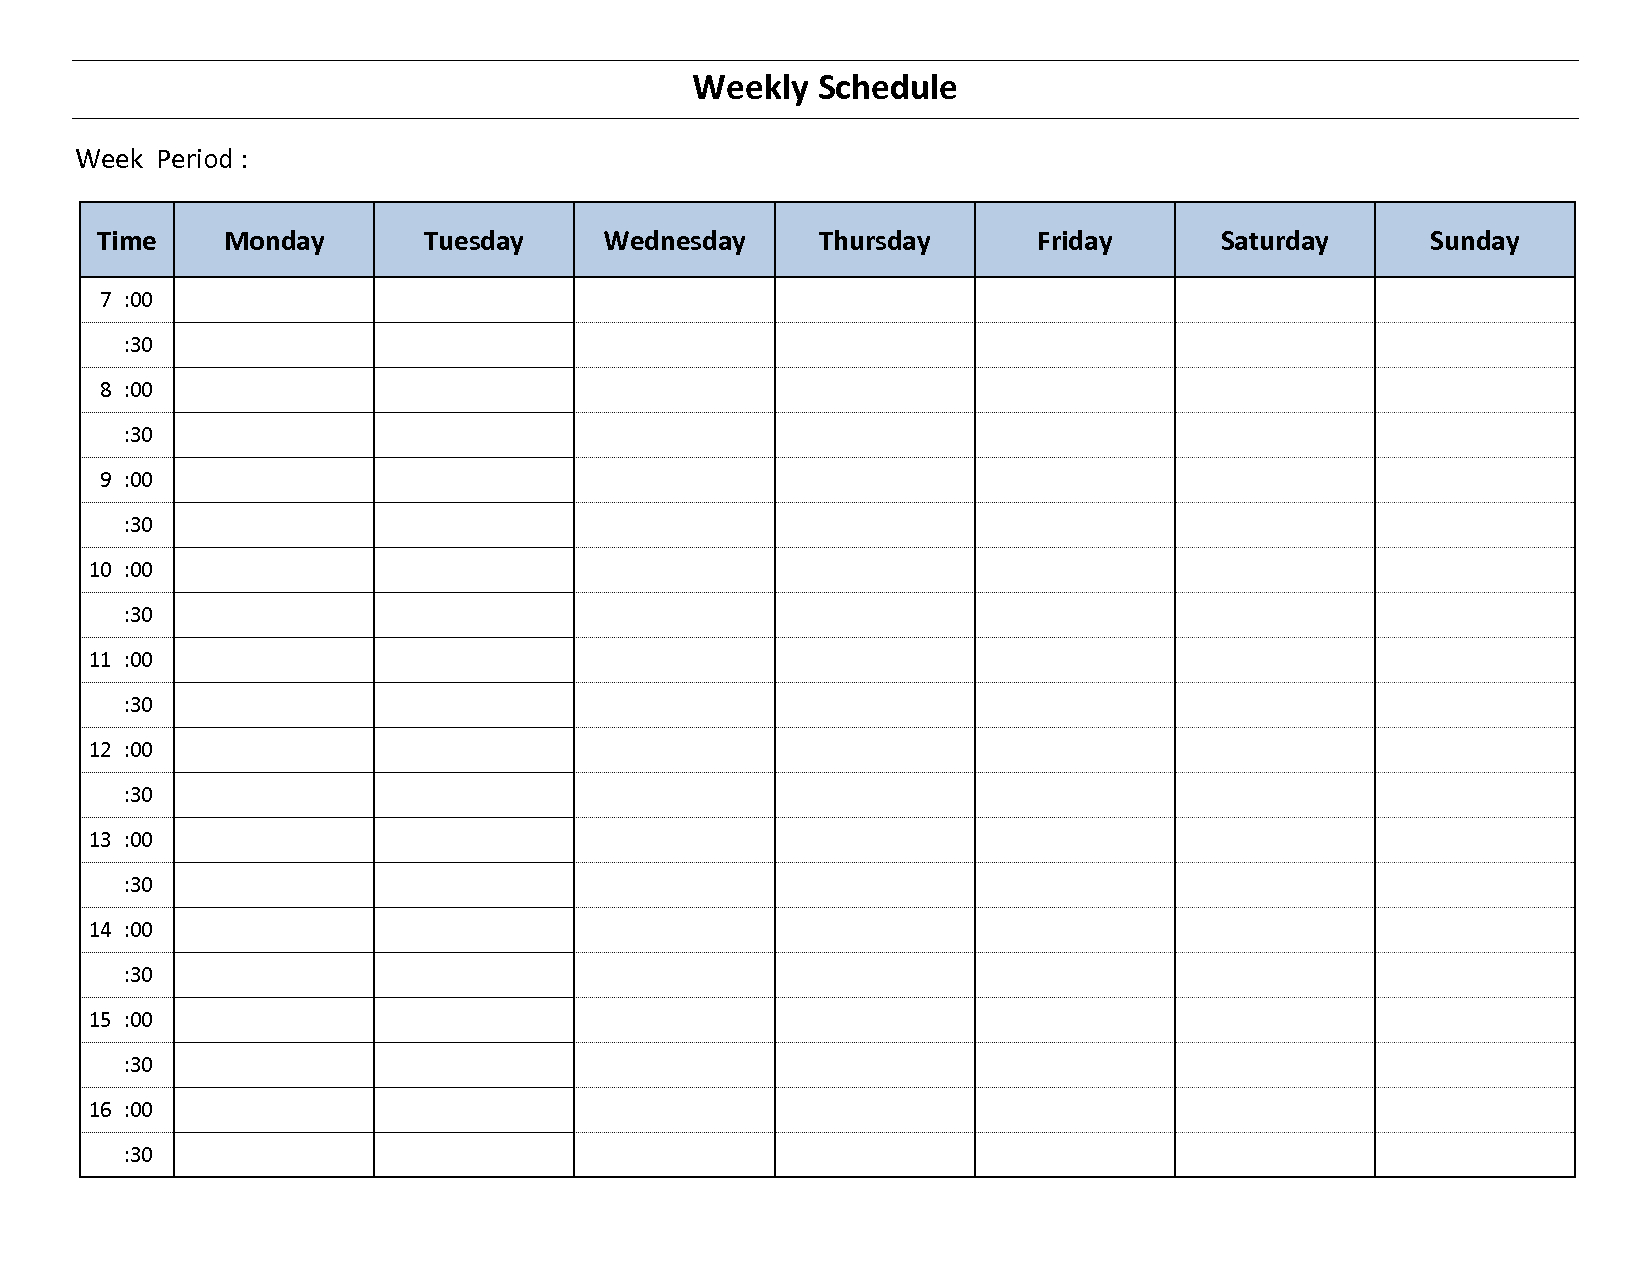 Weekly Planner Plate Excel Construction Schedule Free Download in Week Schedule Template With Times